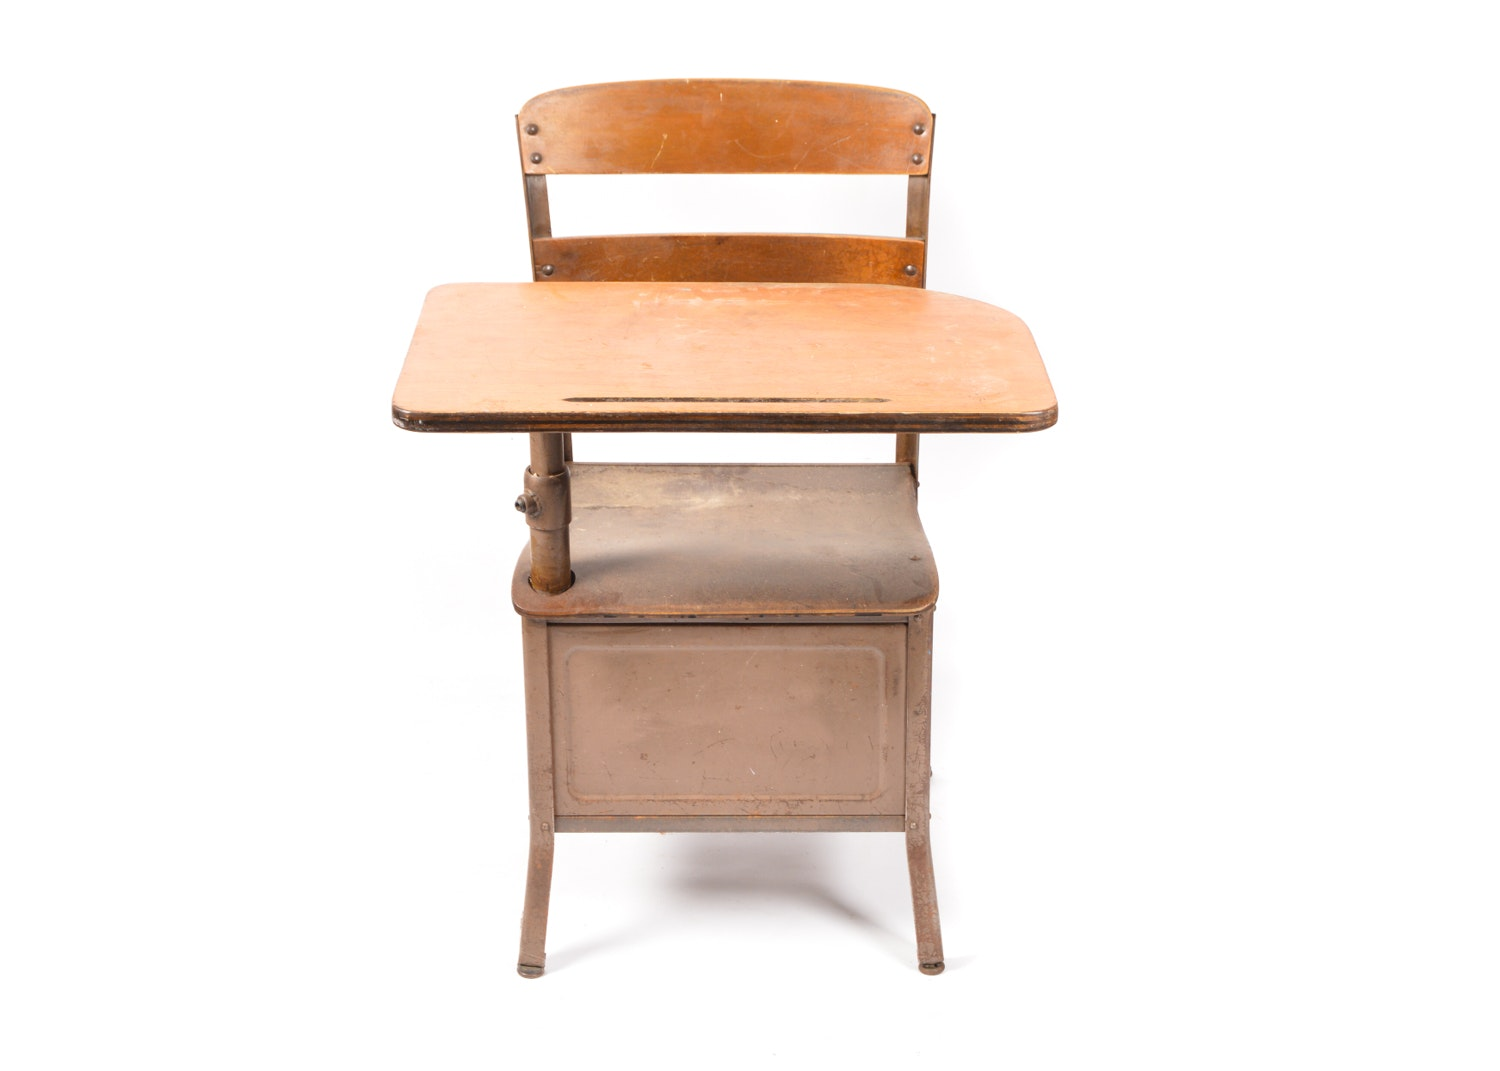 Bent Plywood and Steel Schoolhouse Desk by Irwin, Circa 1940s